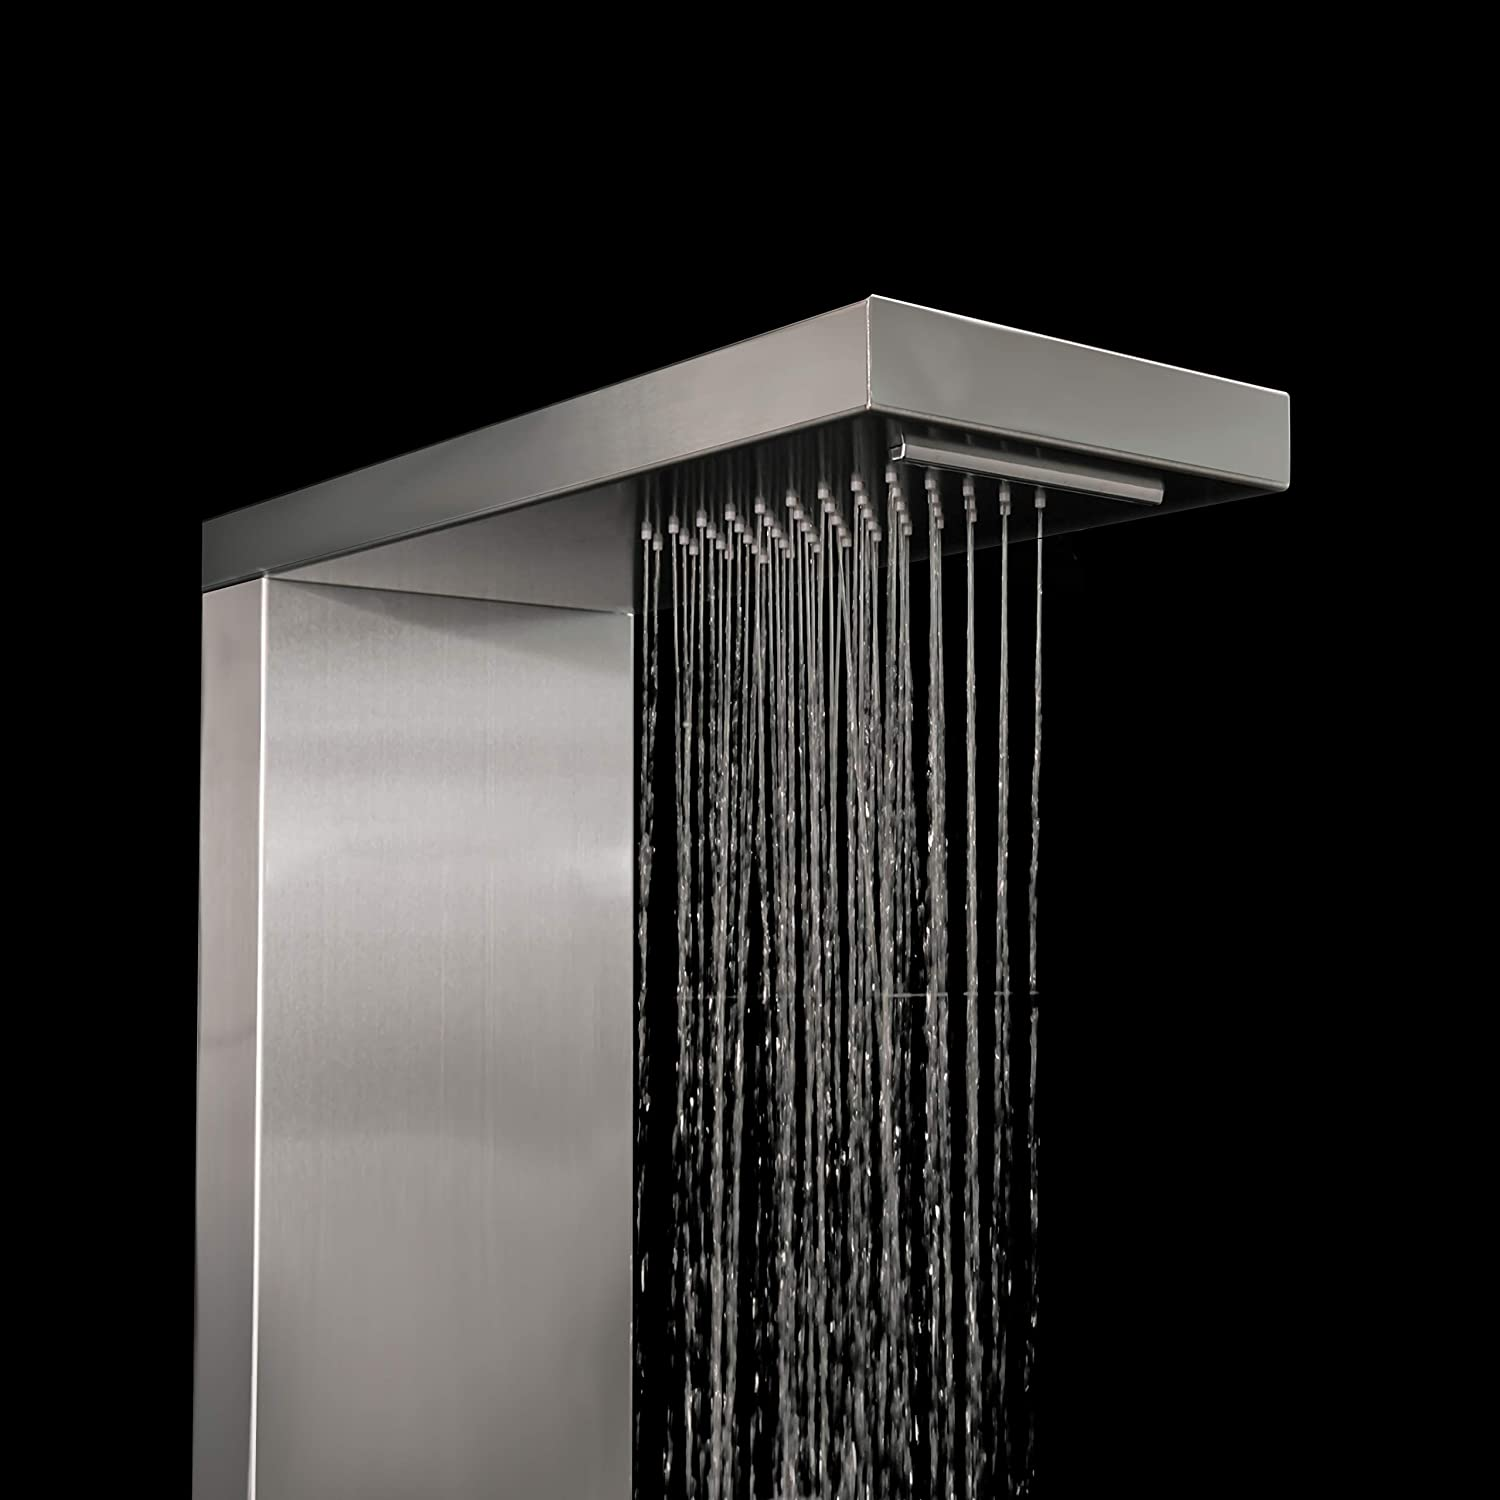 rain Shower and Hand Shower,100 x 14 x 7 cm Mini-Design for Wellness and Shower Pleasure in Your own Bathroom Elbe Shower Panel Column Tower Stainless Steel 304 Without tap,2 x Massage Jets